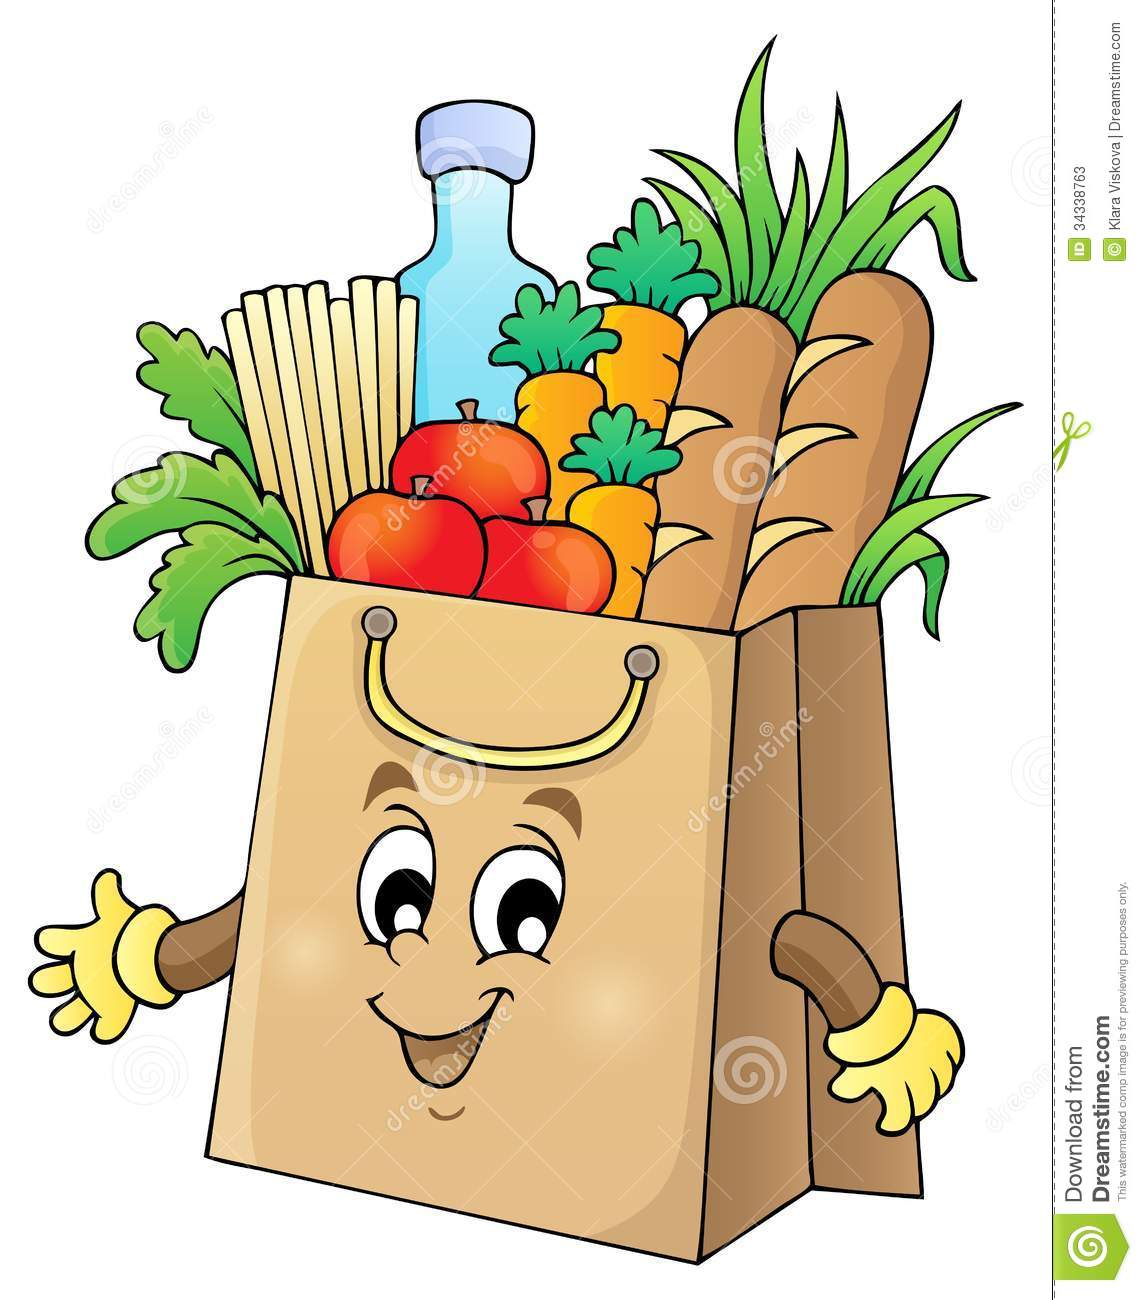 Grocery Bag Of Food Clipart. Shopping bag theme image 1